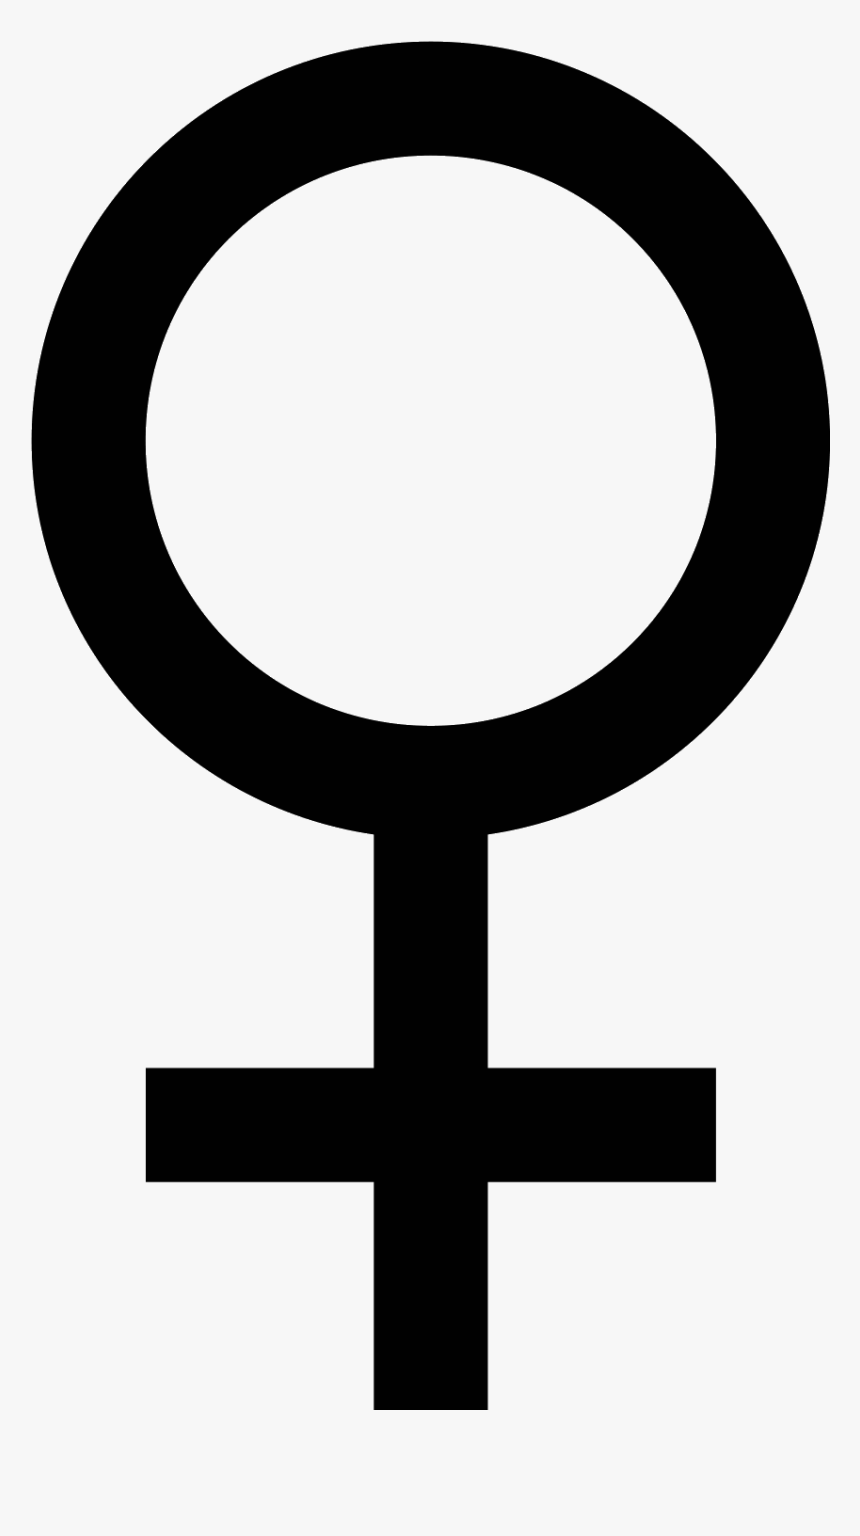 Woman Head Silhouette Female Icon - Female Transparent Sign, HD Png Download, Free Download